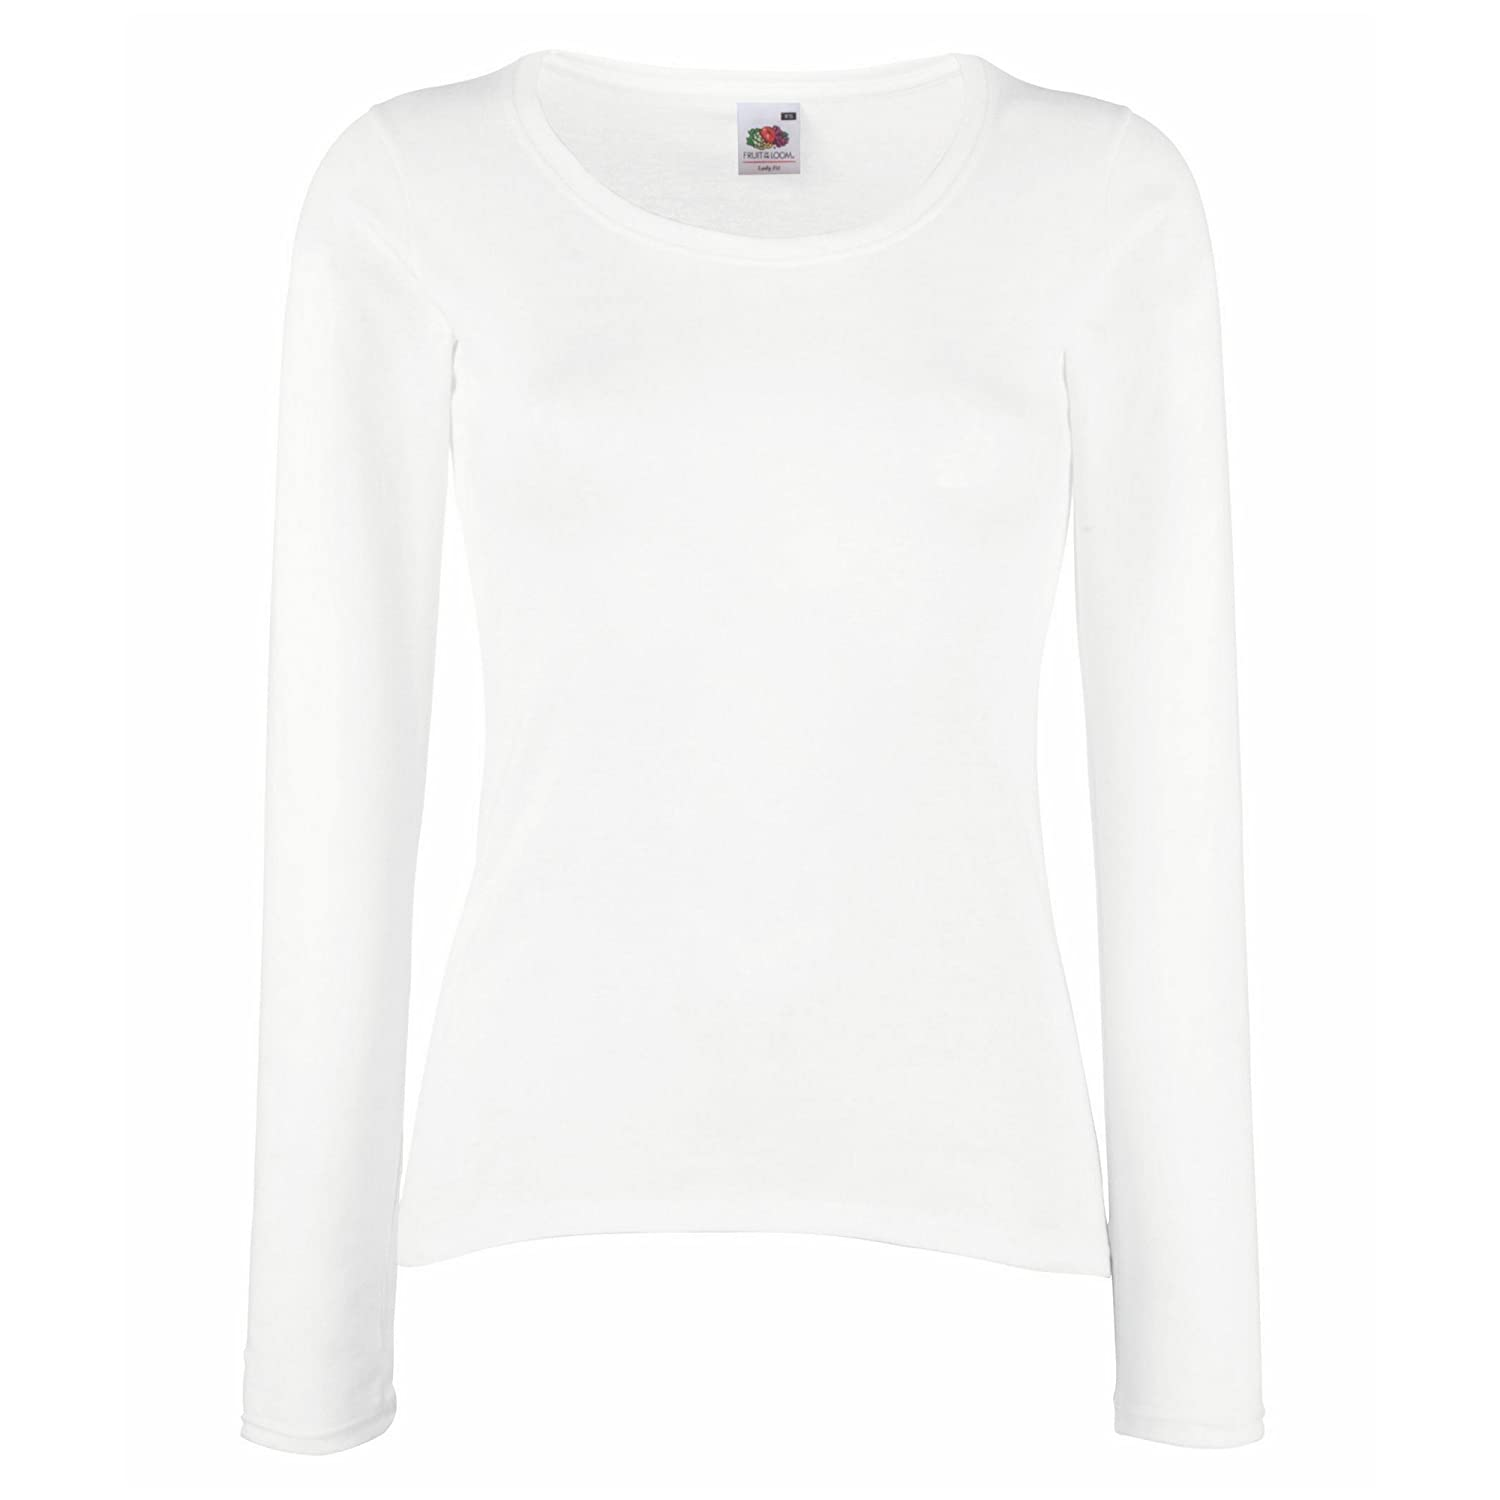 Fruit Of The Loom Ladies/Womens Lady-Fit Long Sleeve Crew Neck T-Shirt:  Amazon.co.uk: Clothing